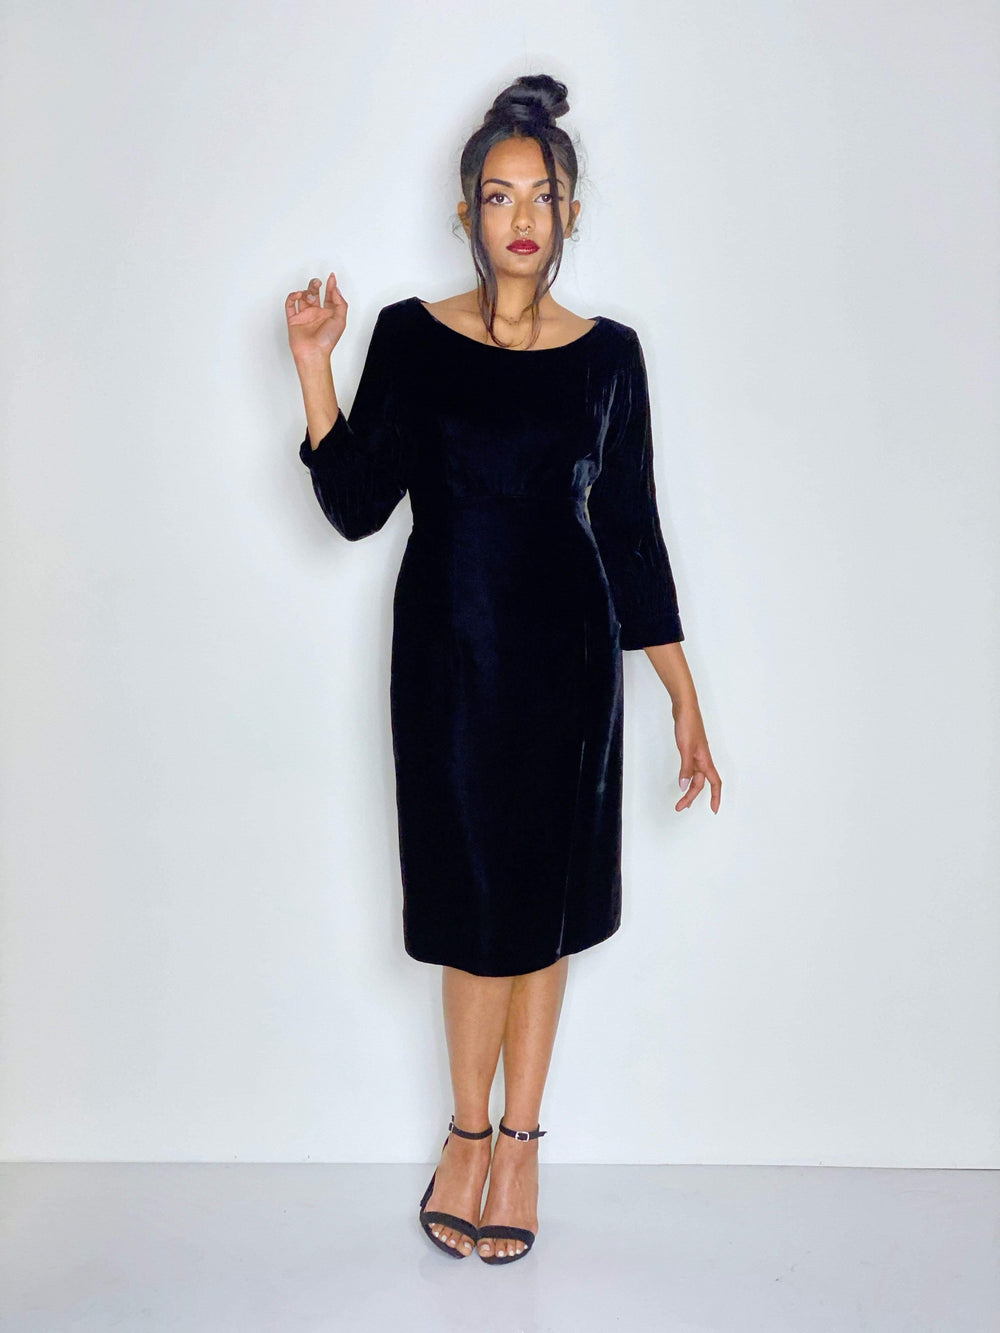 HOUSE OF STRUT DRESSES Black Velvet Pin-Up Style Fitted Dress by Lee Richards